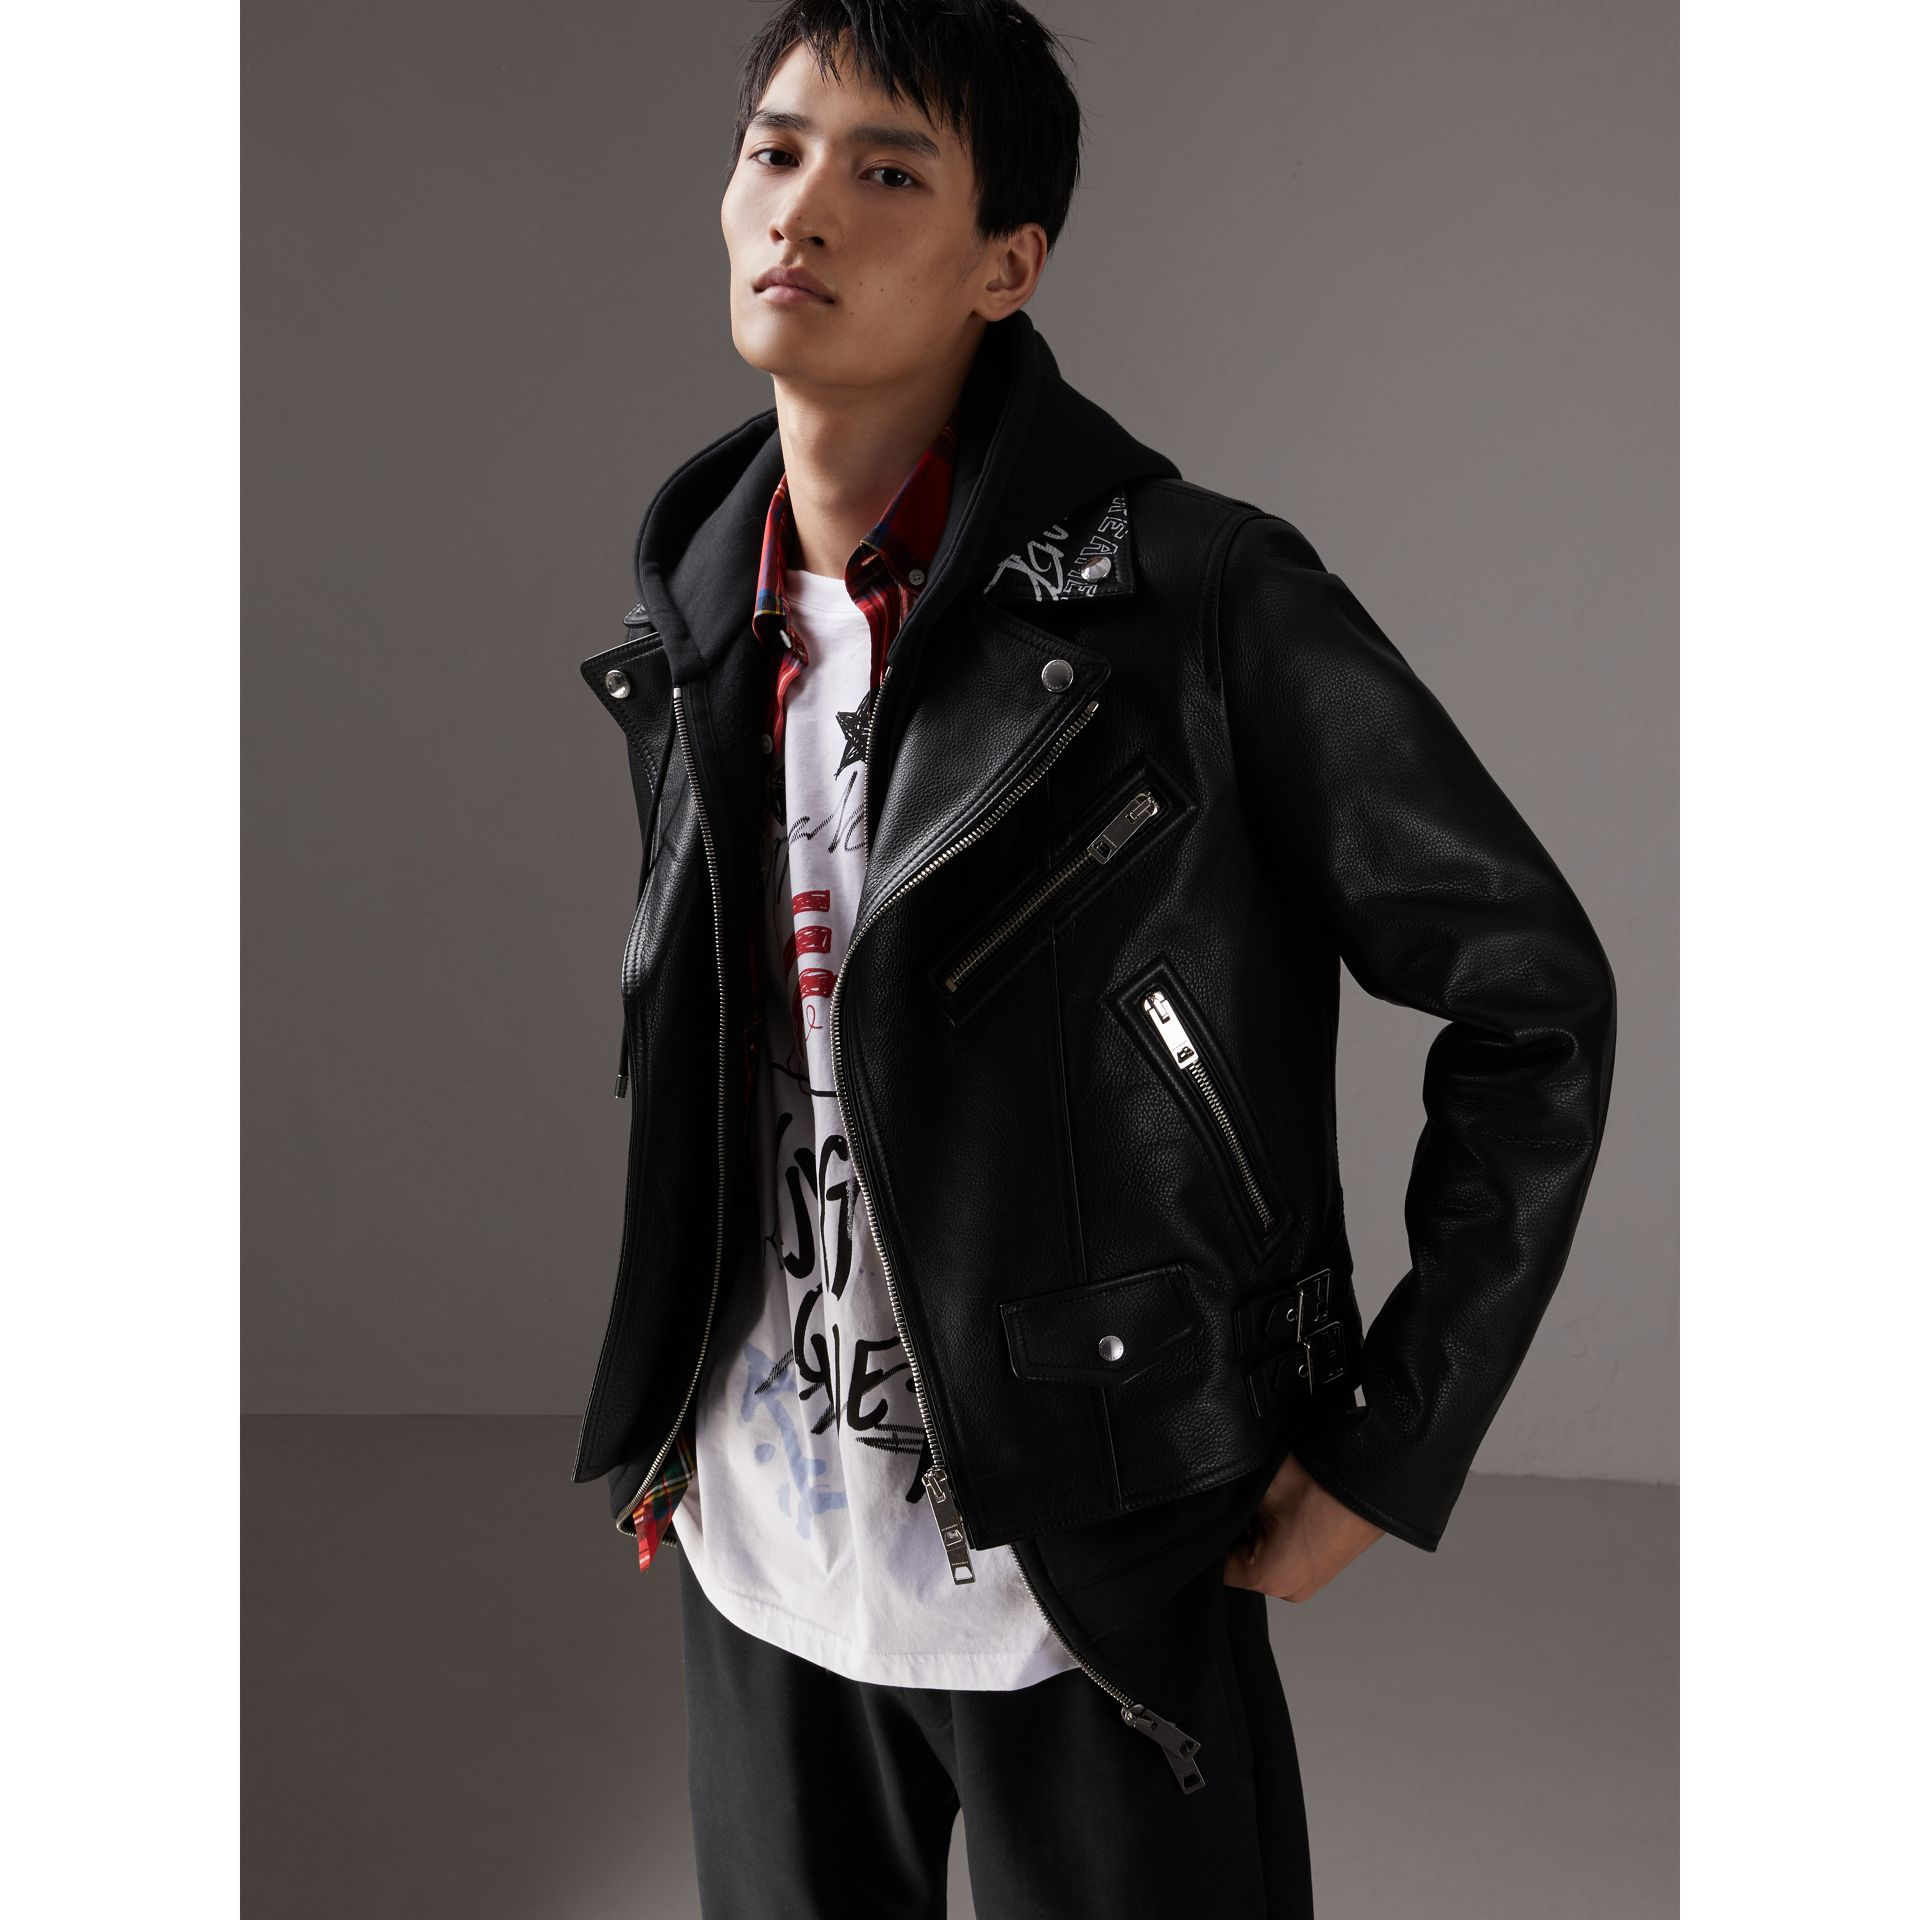 Burberry x Kris Wu Leather Biker Jacket in Black - Men | Burberry Hong Kong - gallery image 6